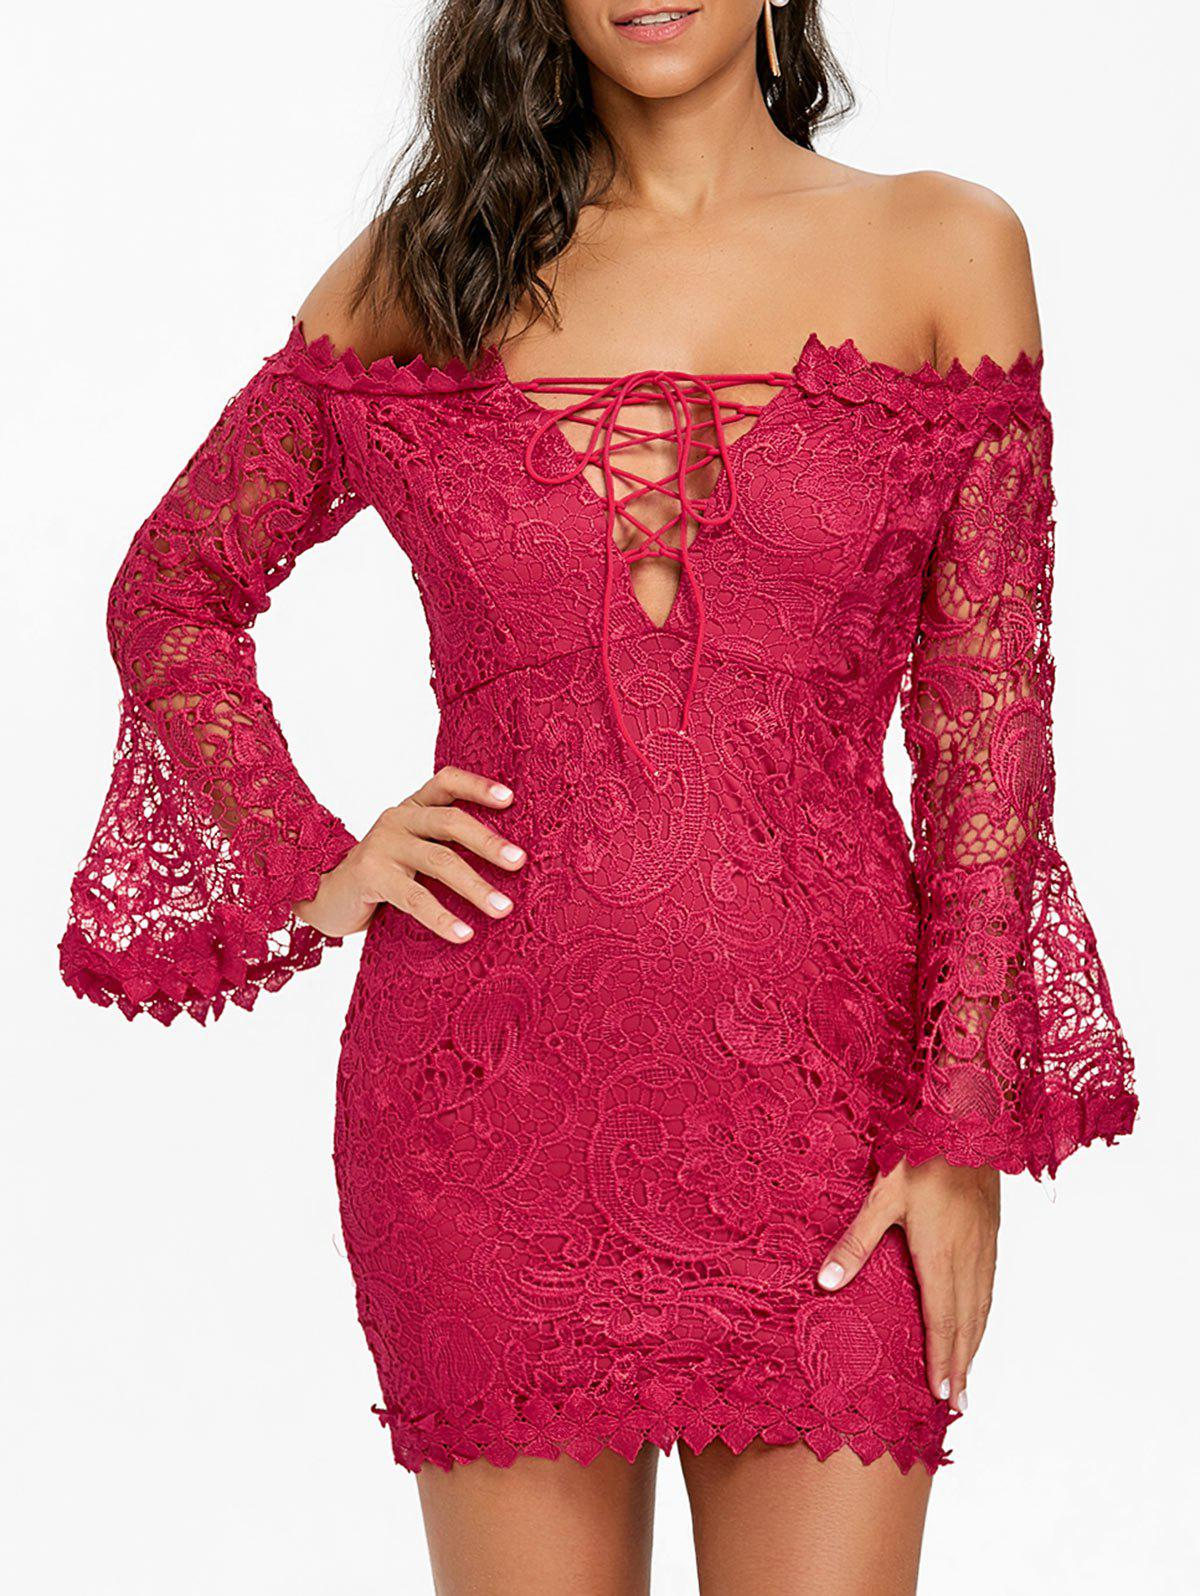 Lace Off The Shoulder Mini Dress - BURGUNDY M